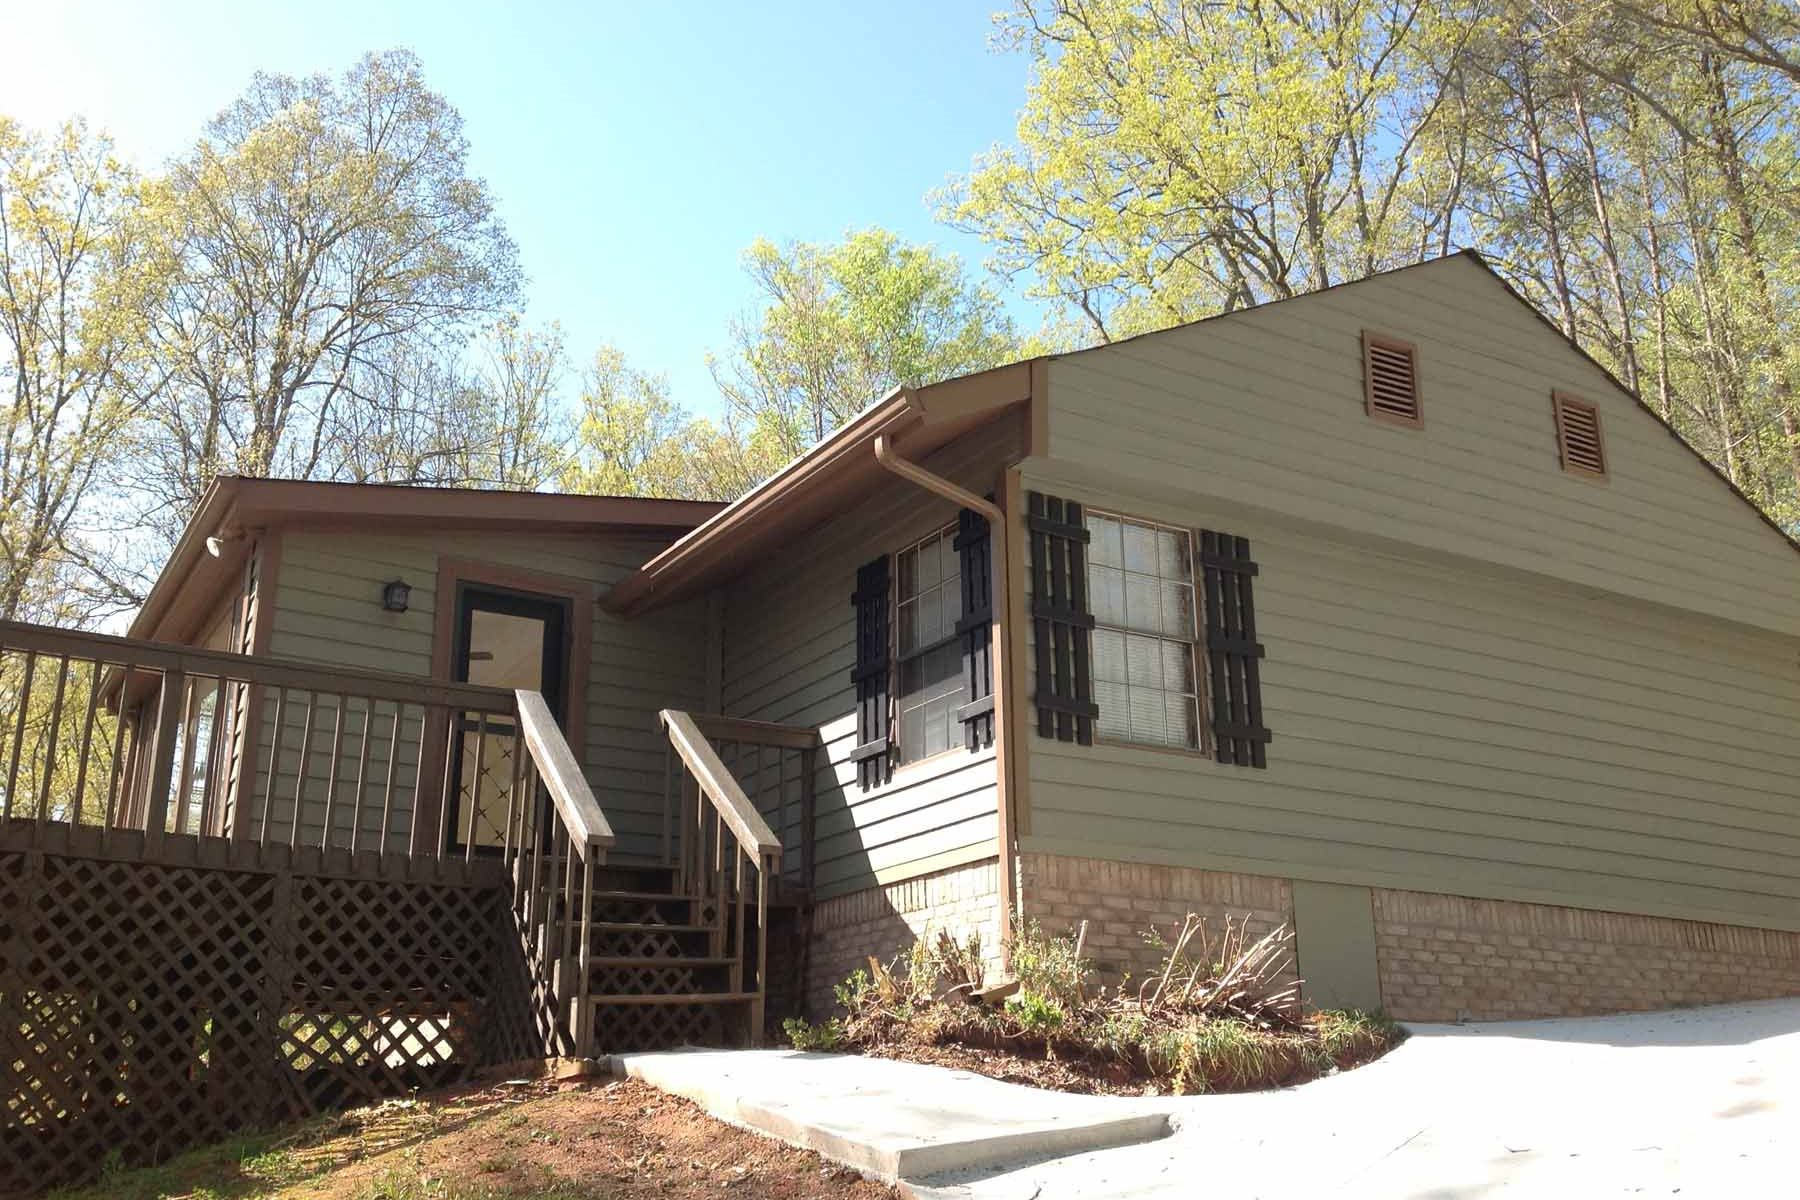 Single Family Home for Sale at Completely Remodeled Getaway 2388 Ford White Road Gainesville, Georgia, 30506 United States